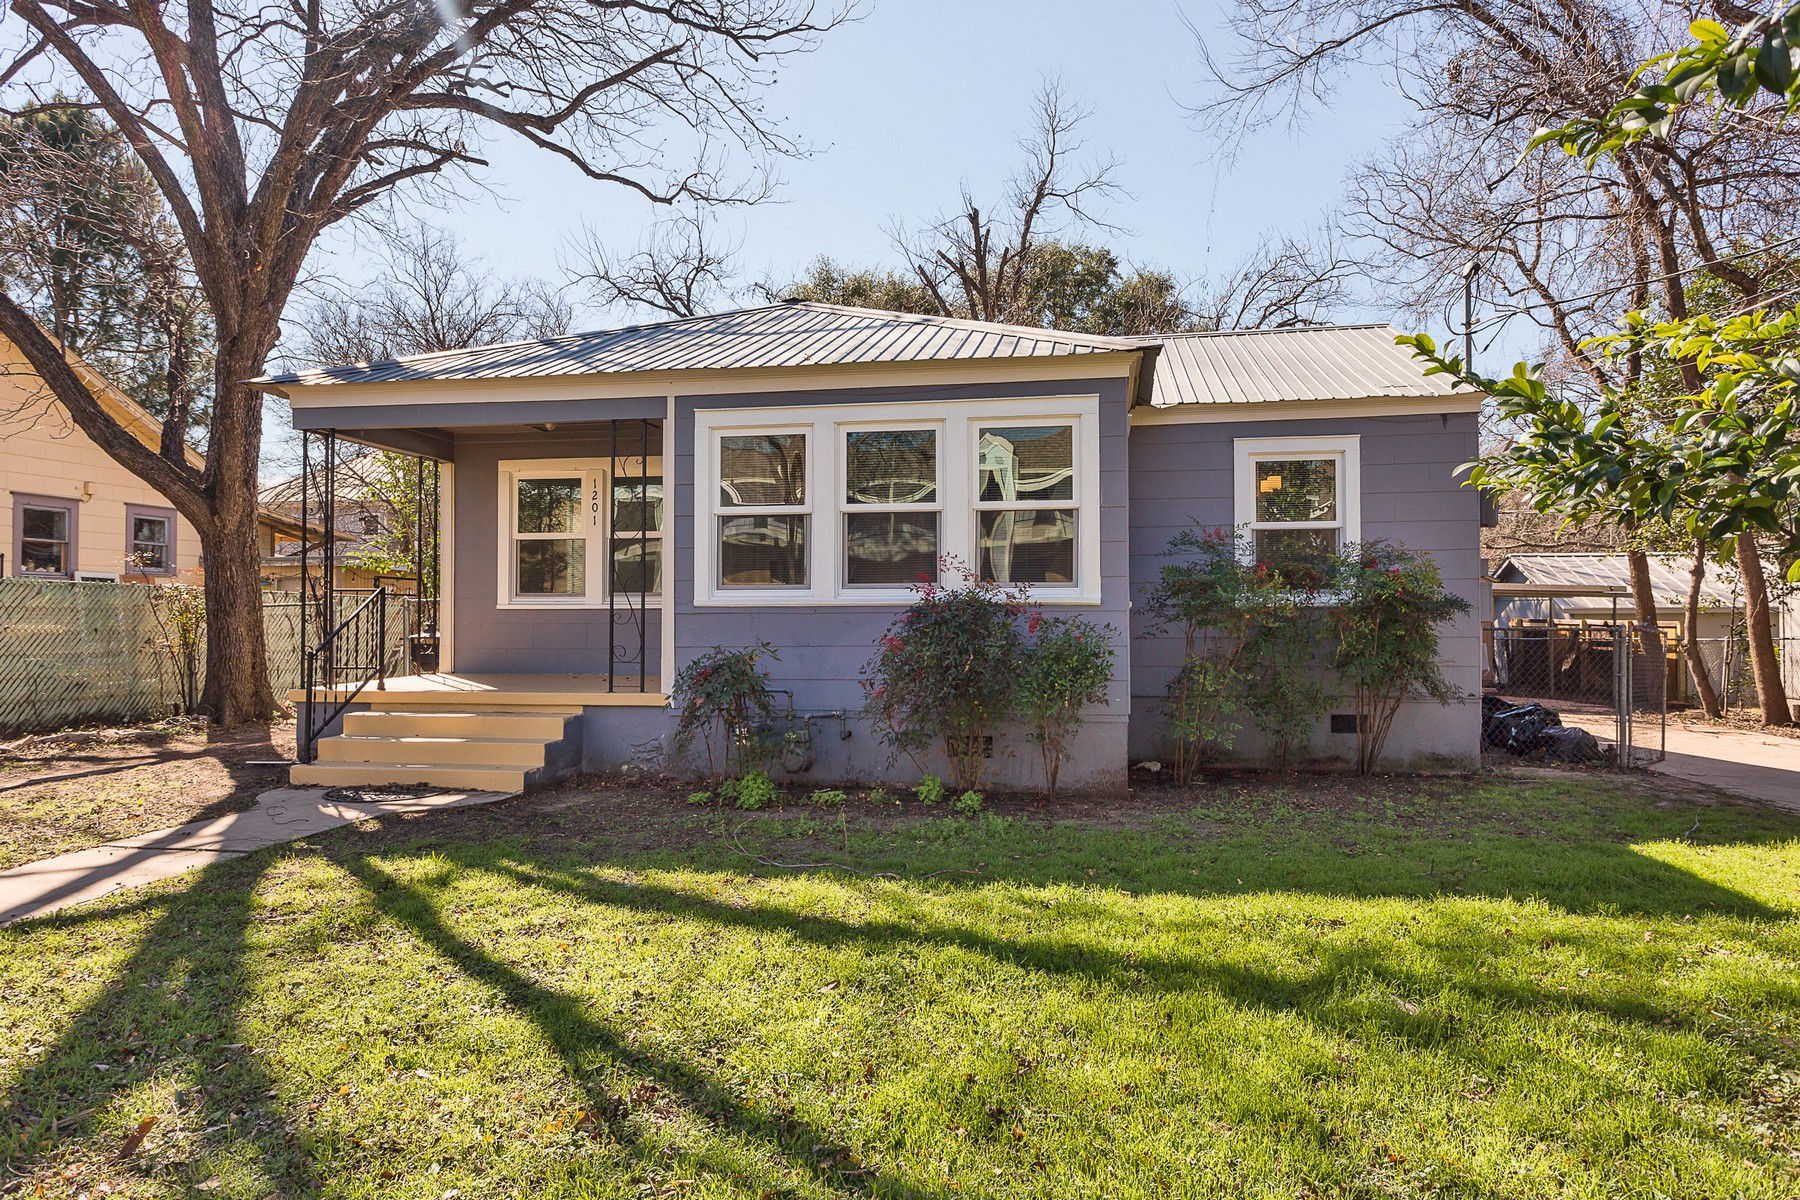 Multi-Family Home for Sale at Great Opportunity in Shoalcrest Oaks 1201 W 40th St A & B Austin, Texas 78756 United States